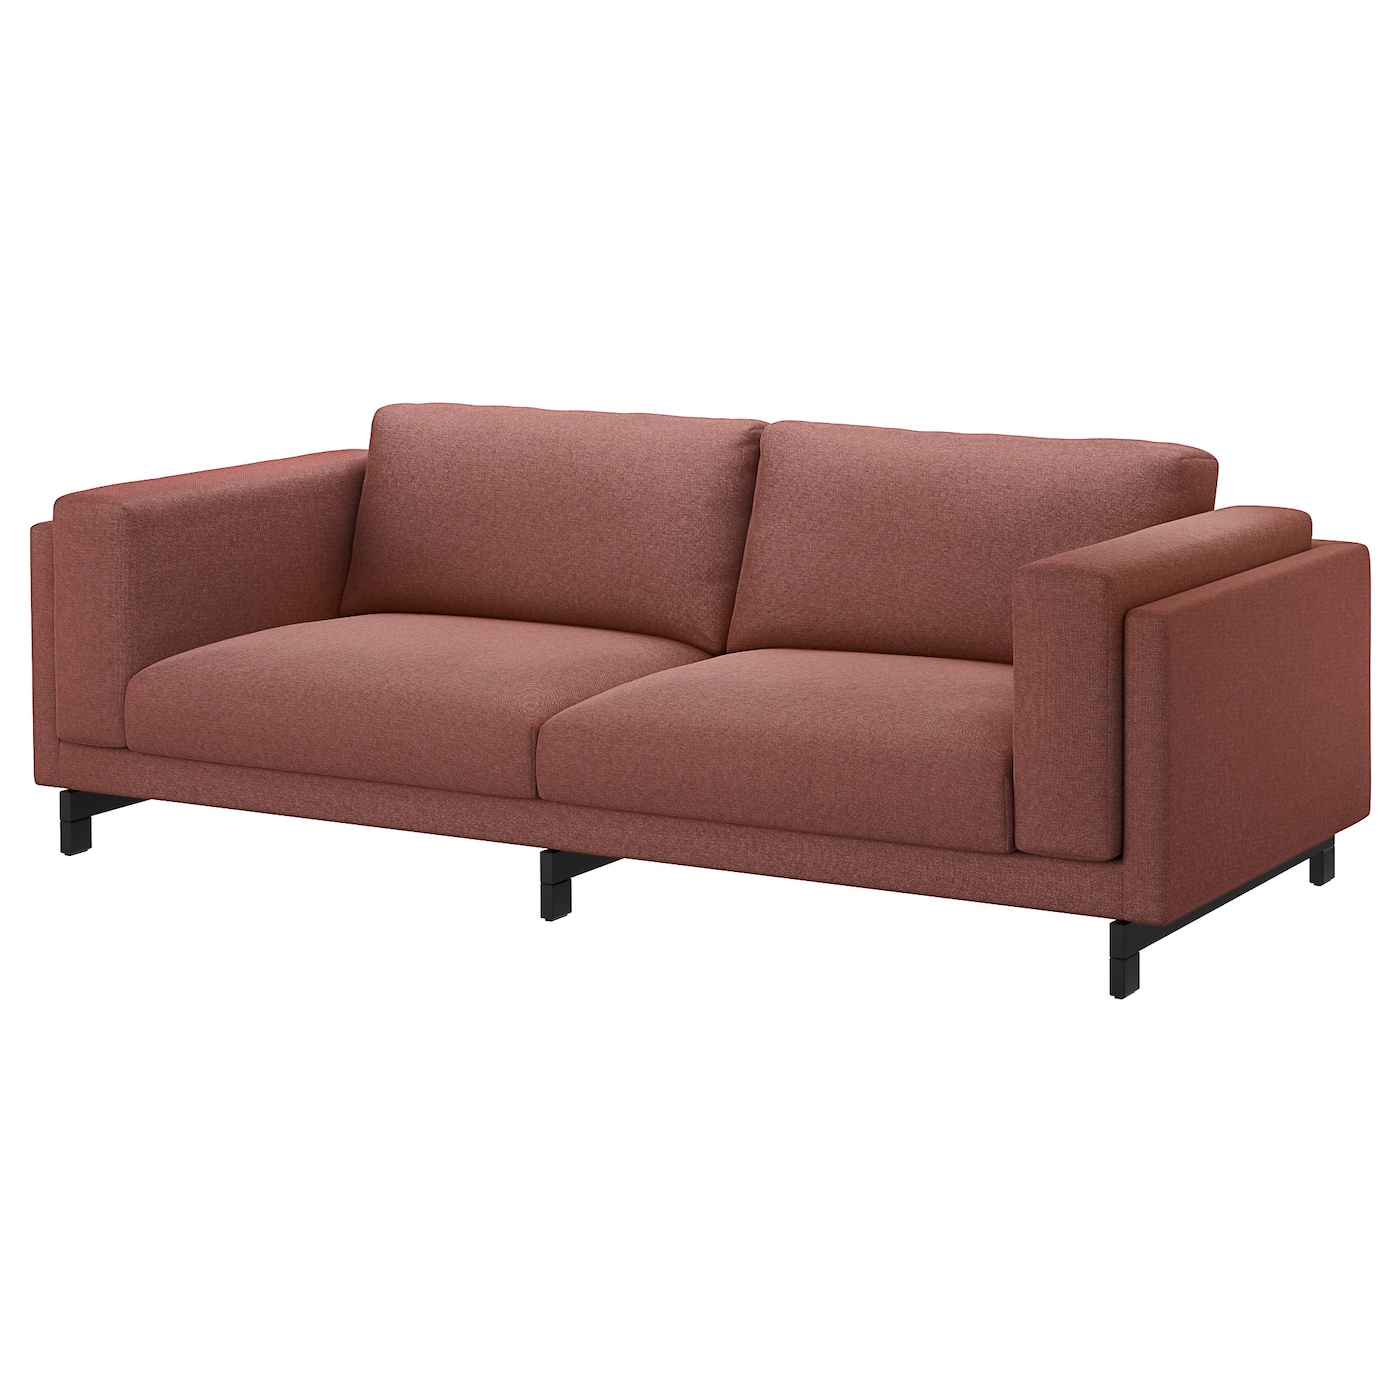 NOCKEBY Three-seat sofa Tallmyra rust/wood - IKEA